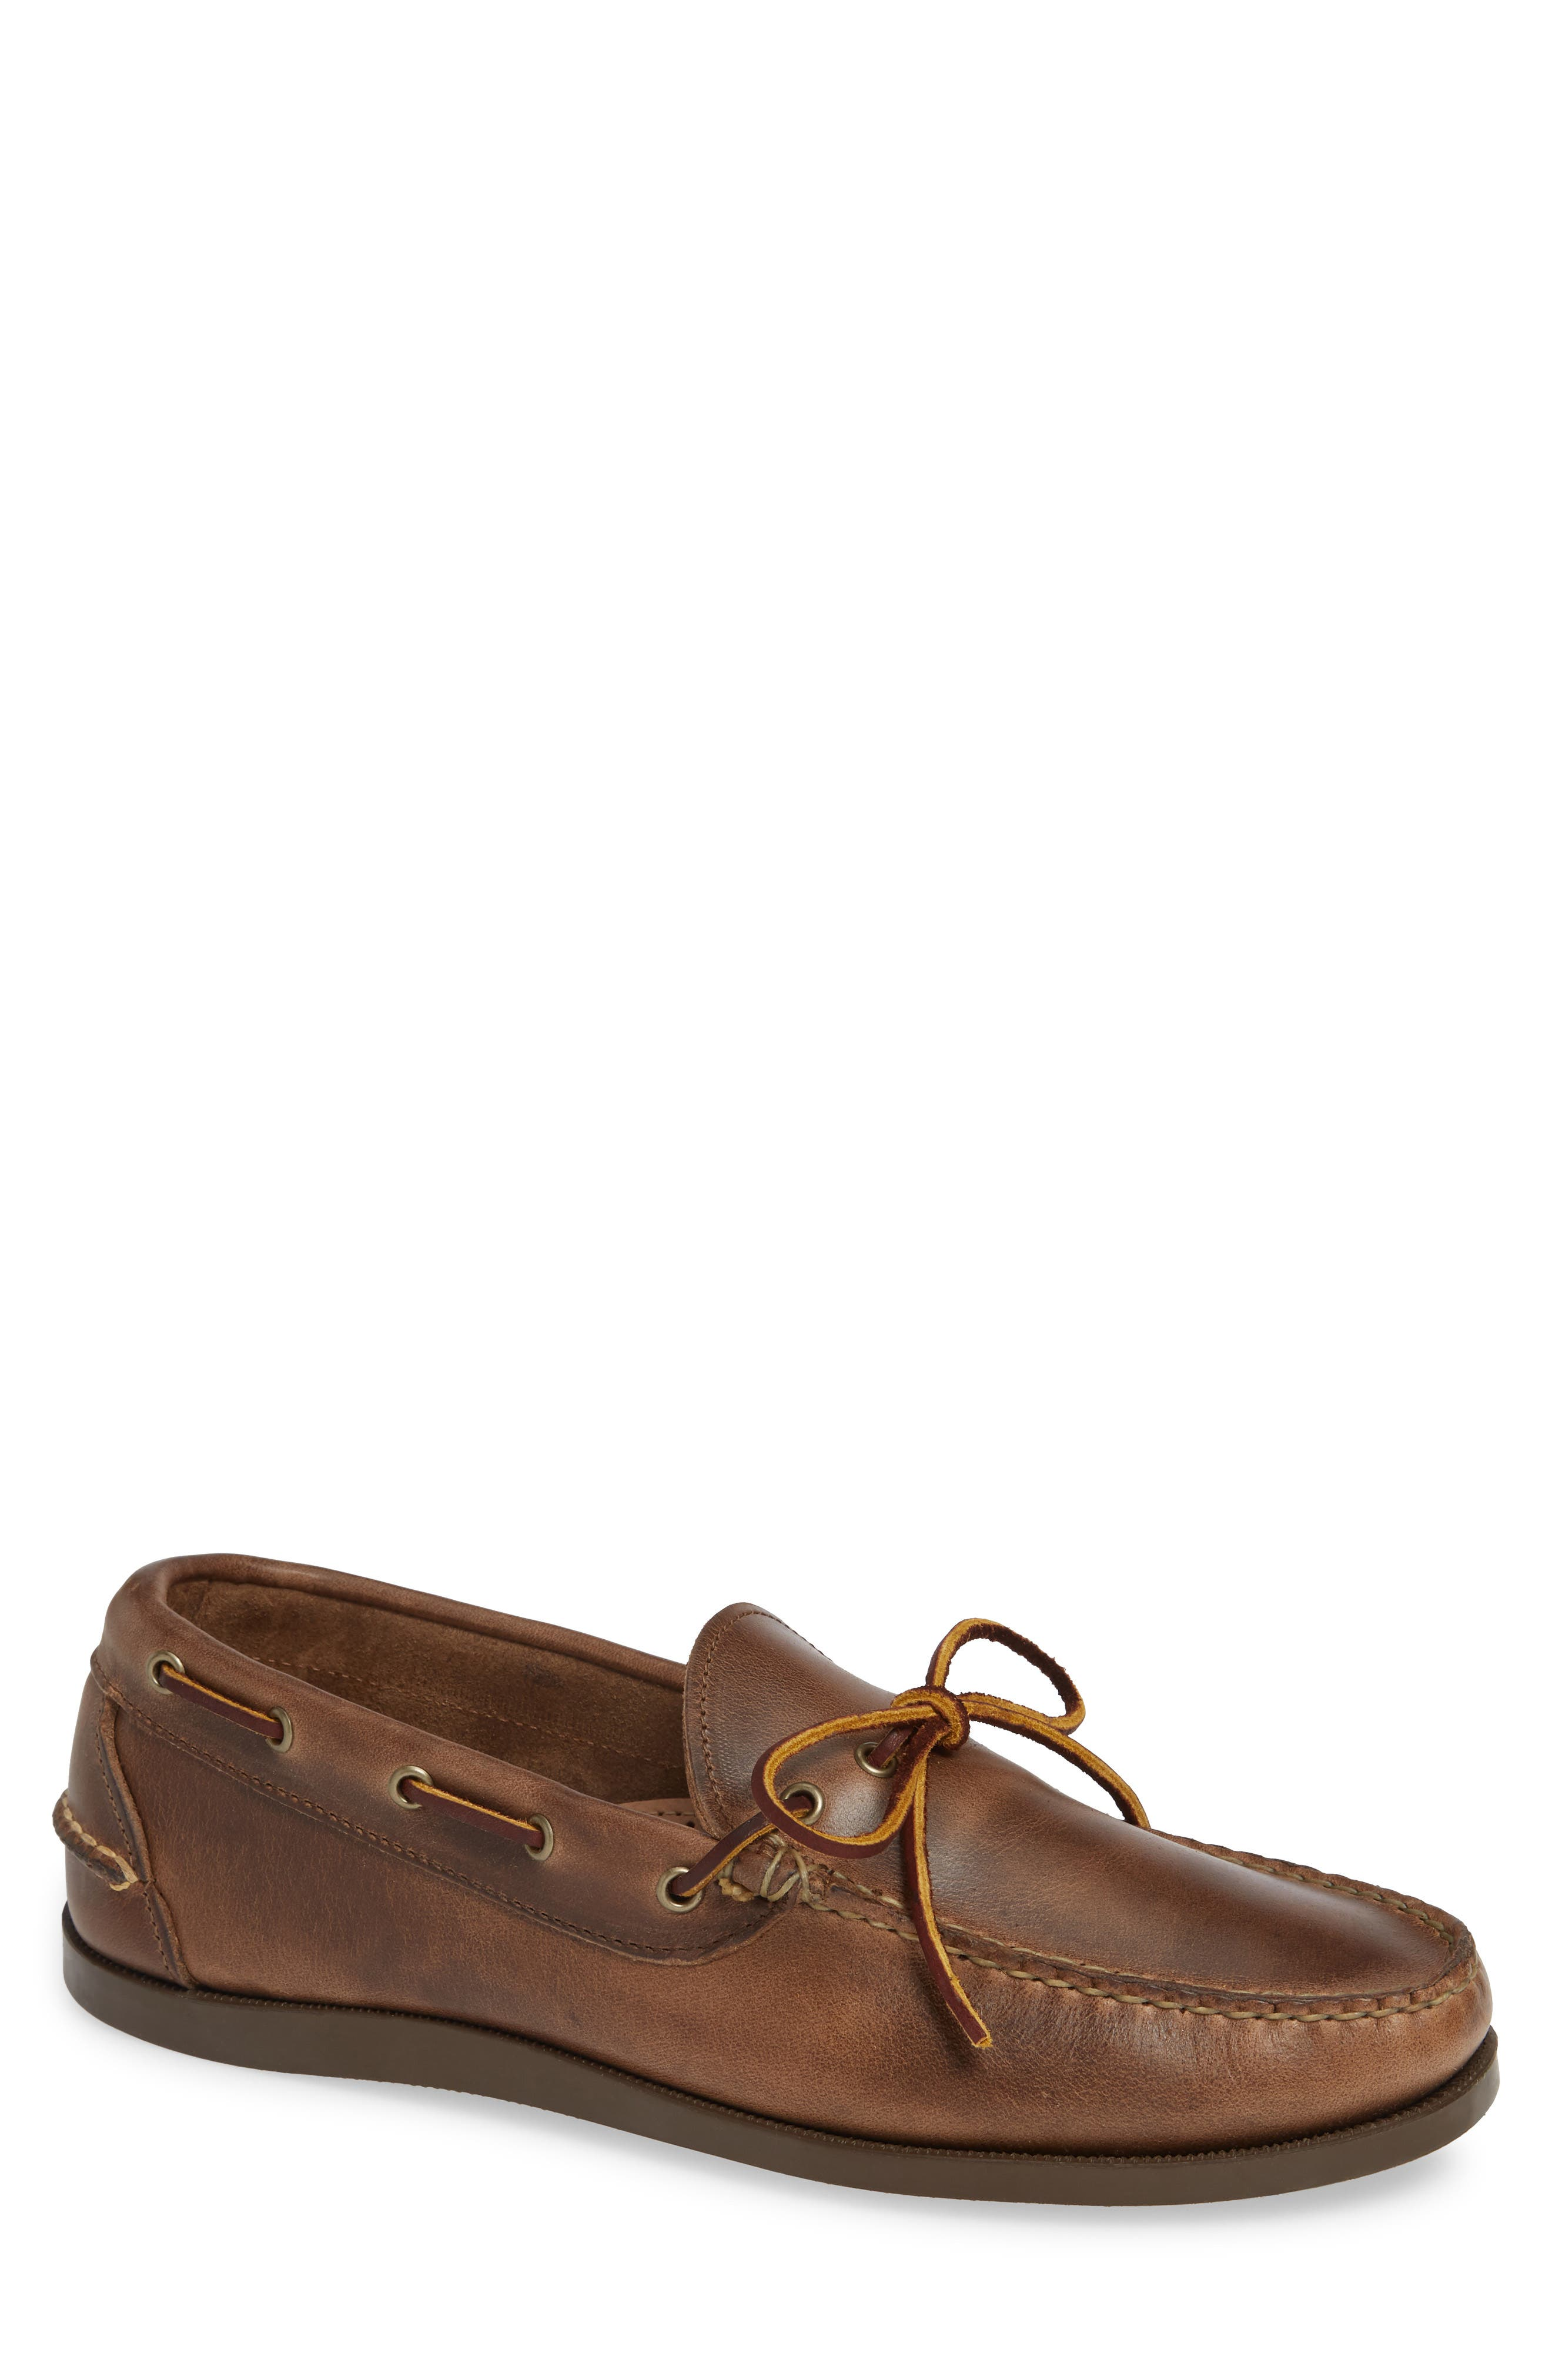 OAK STREET BOOTMAKERS Camp Moccasin in Natural Leather